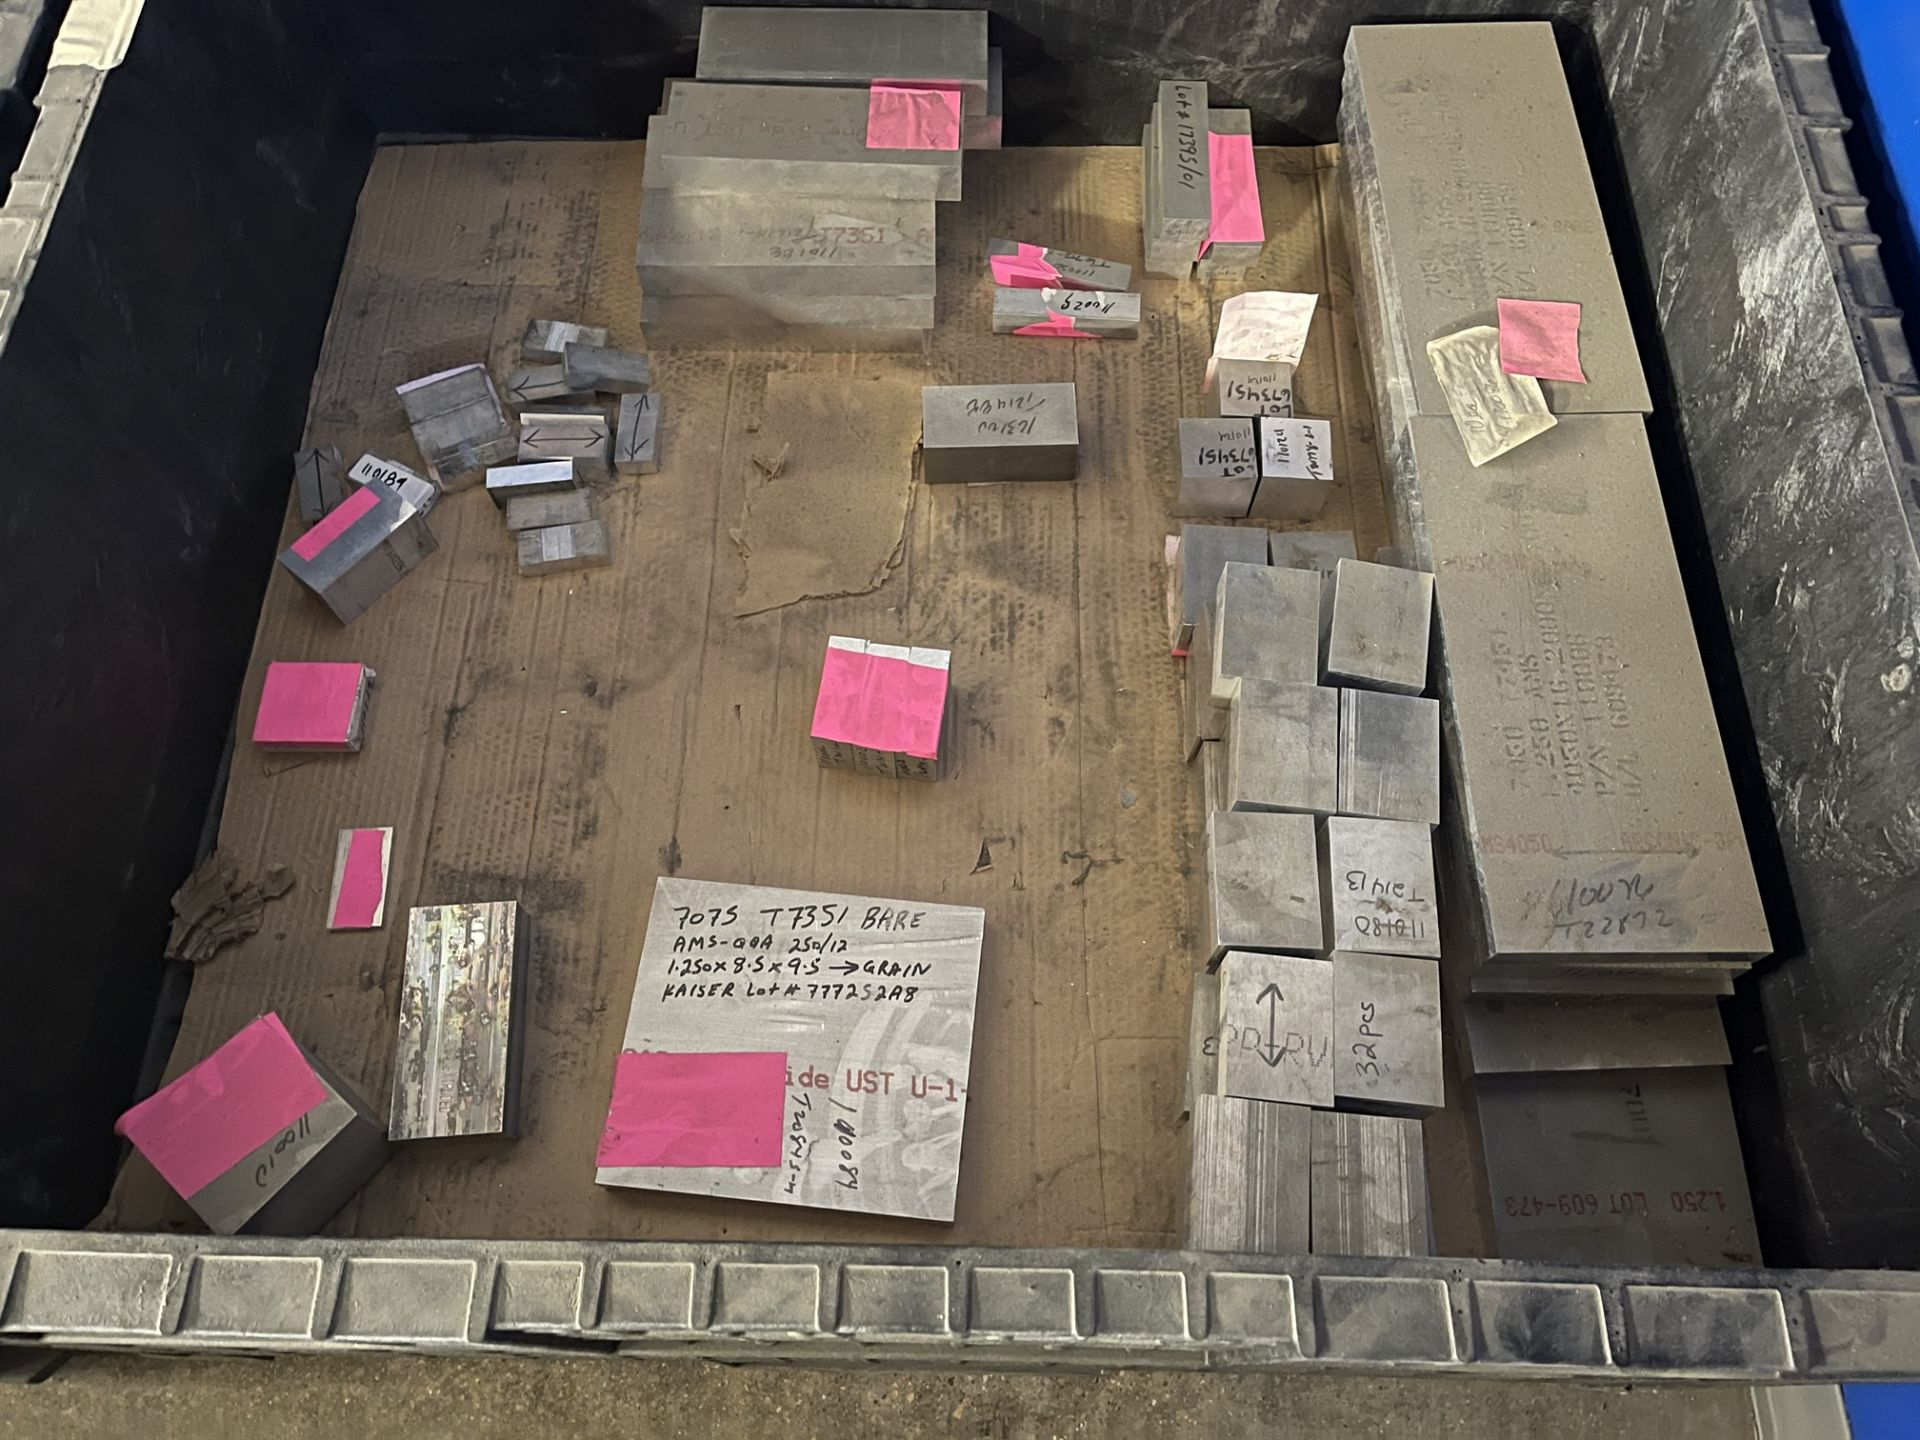 Lot Comprising (2) Collapsible Crates w/ Assorted 6AL-4V AMS4911 Titanium Block and 7075-T73 BMS7- - Image 8 of 8